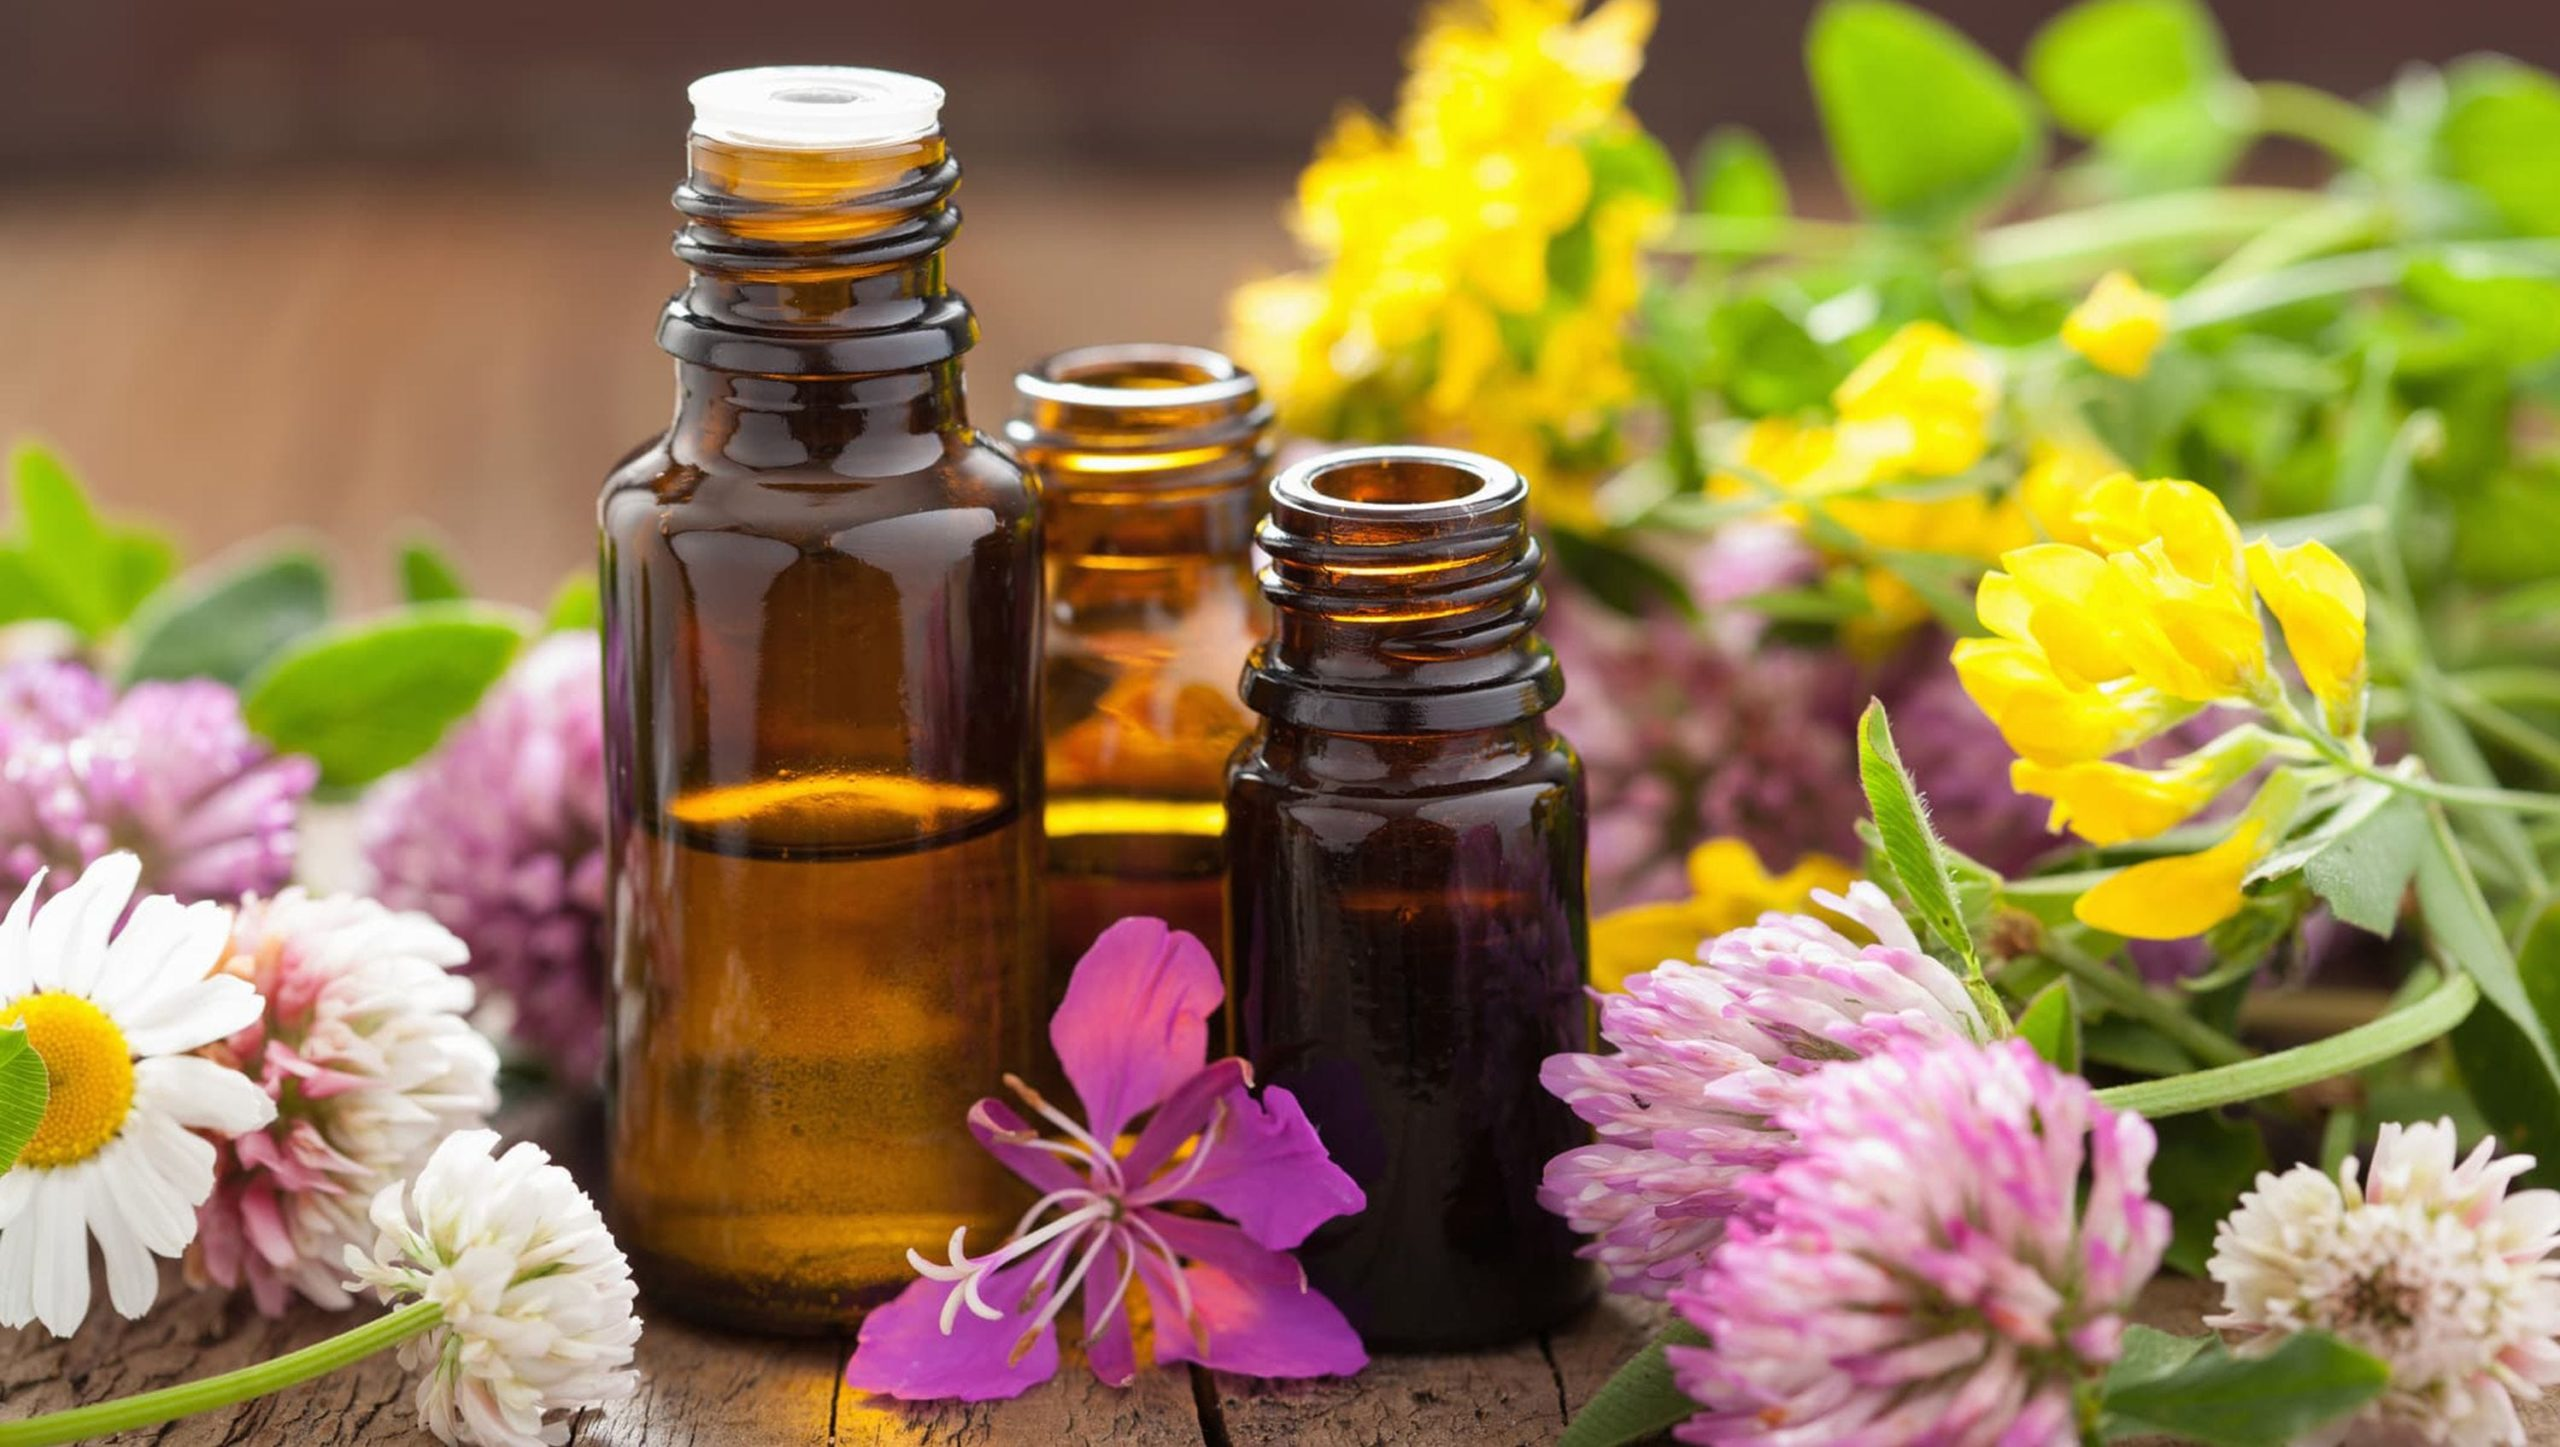 Best essential oils to relax